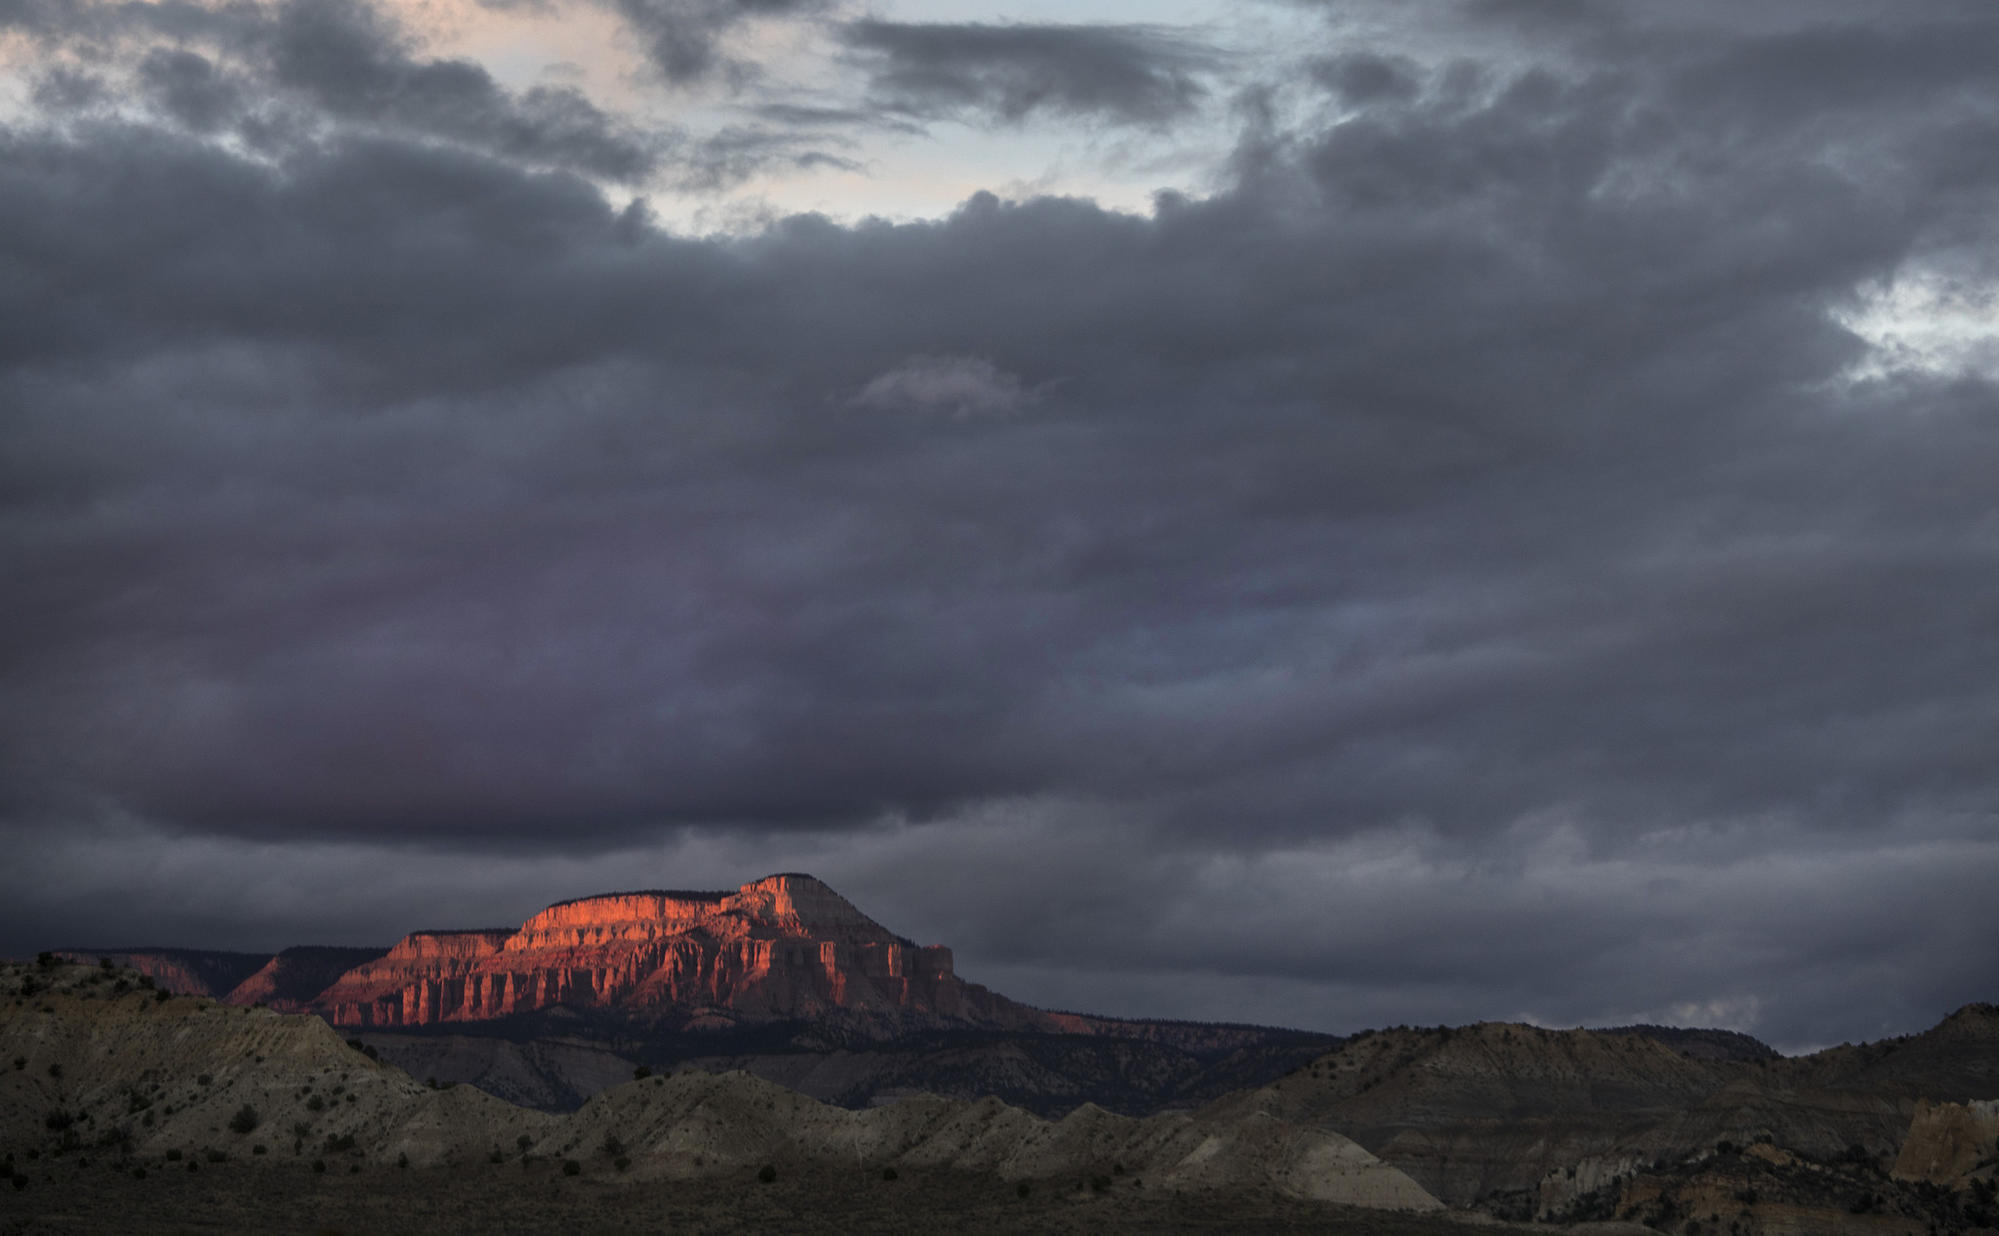 Light from a fading sunset bathes 10,188-foot Powell Point in a view from state Highway 12 near Tropic, Utah, in Grand Staircase-Escalante National Monument.